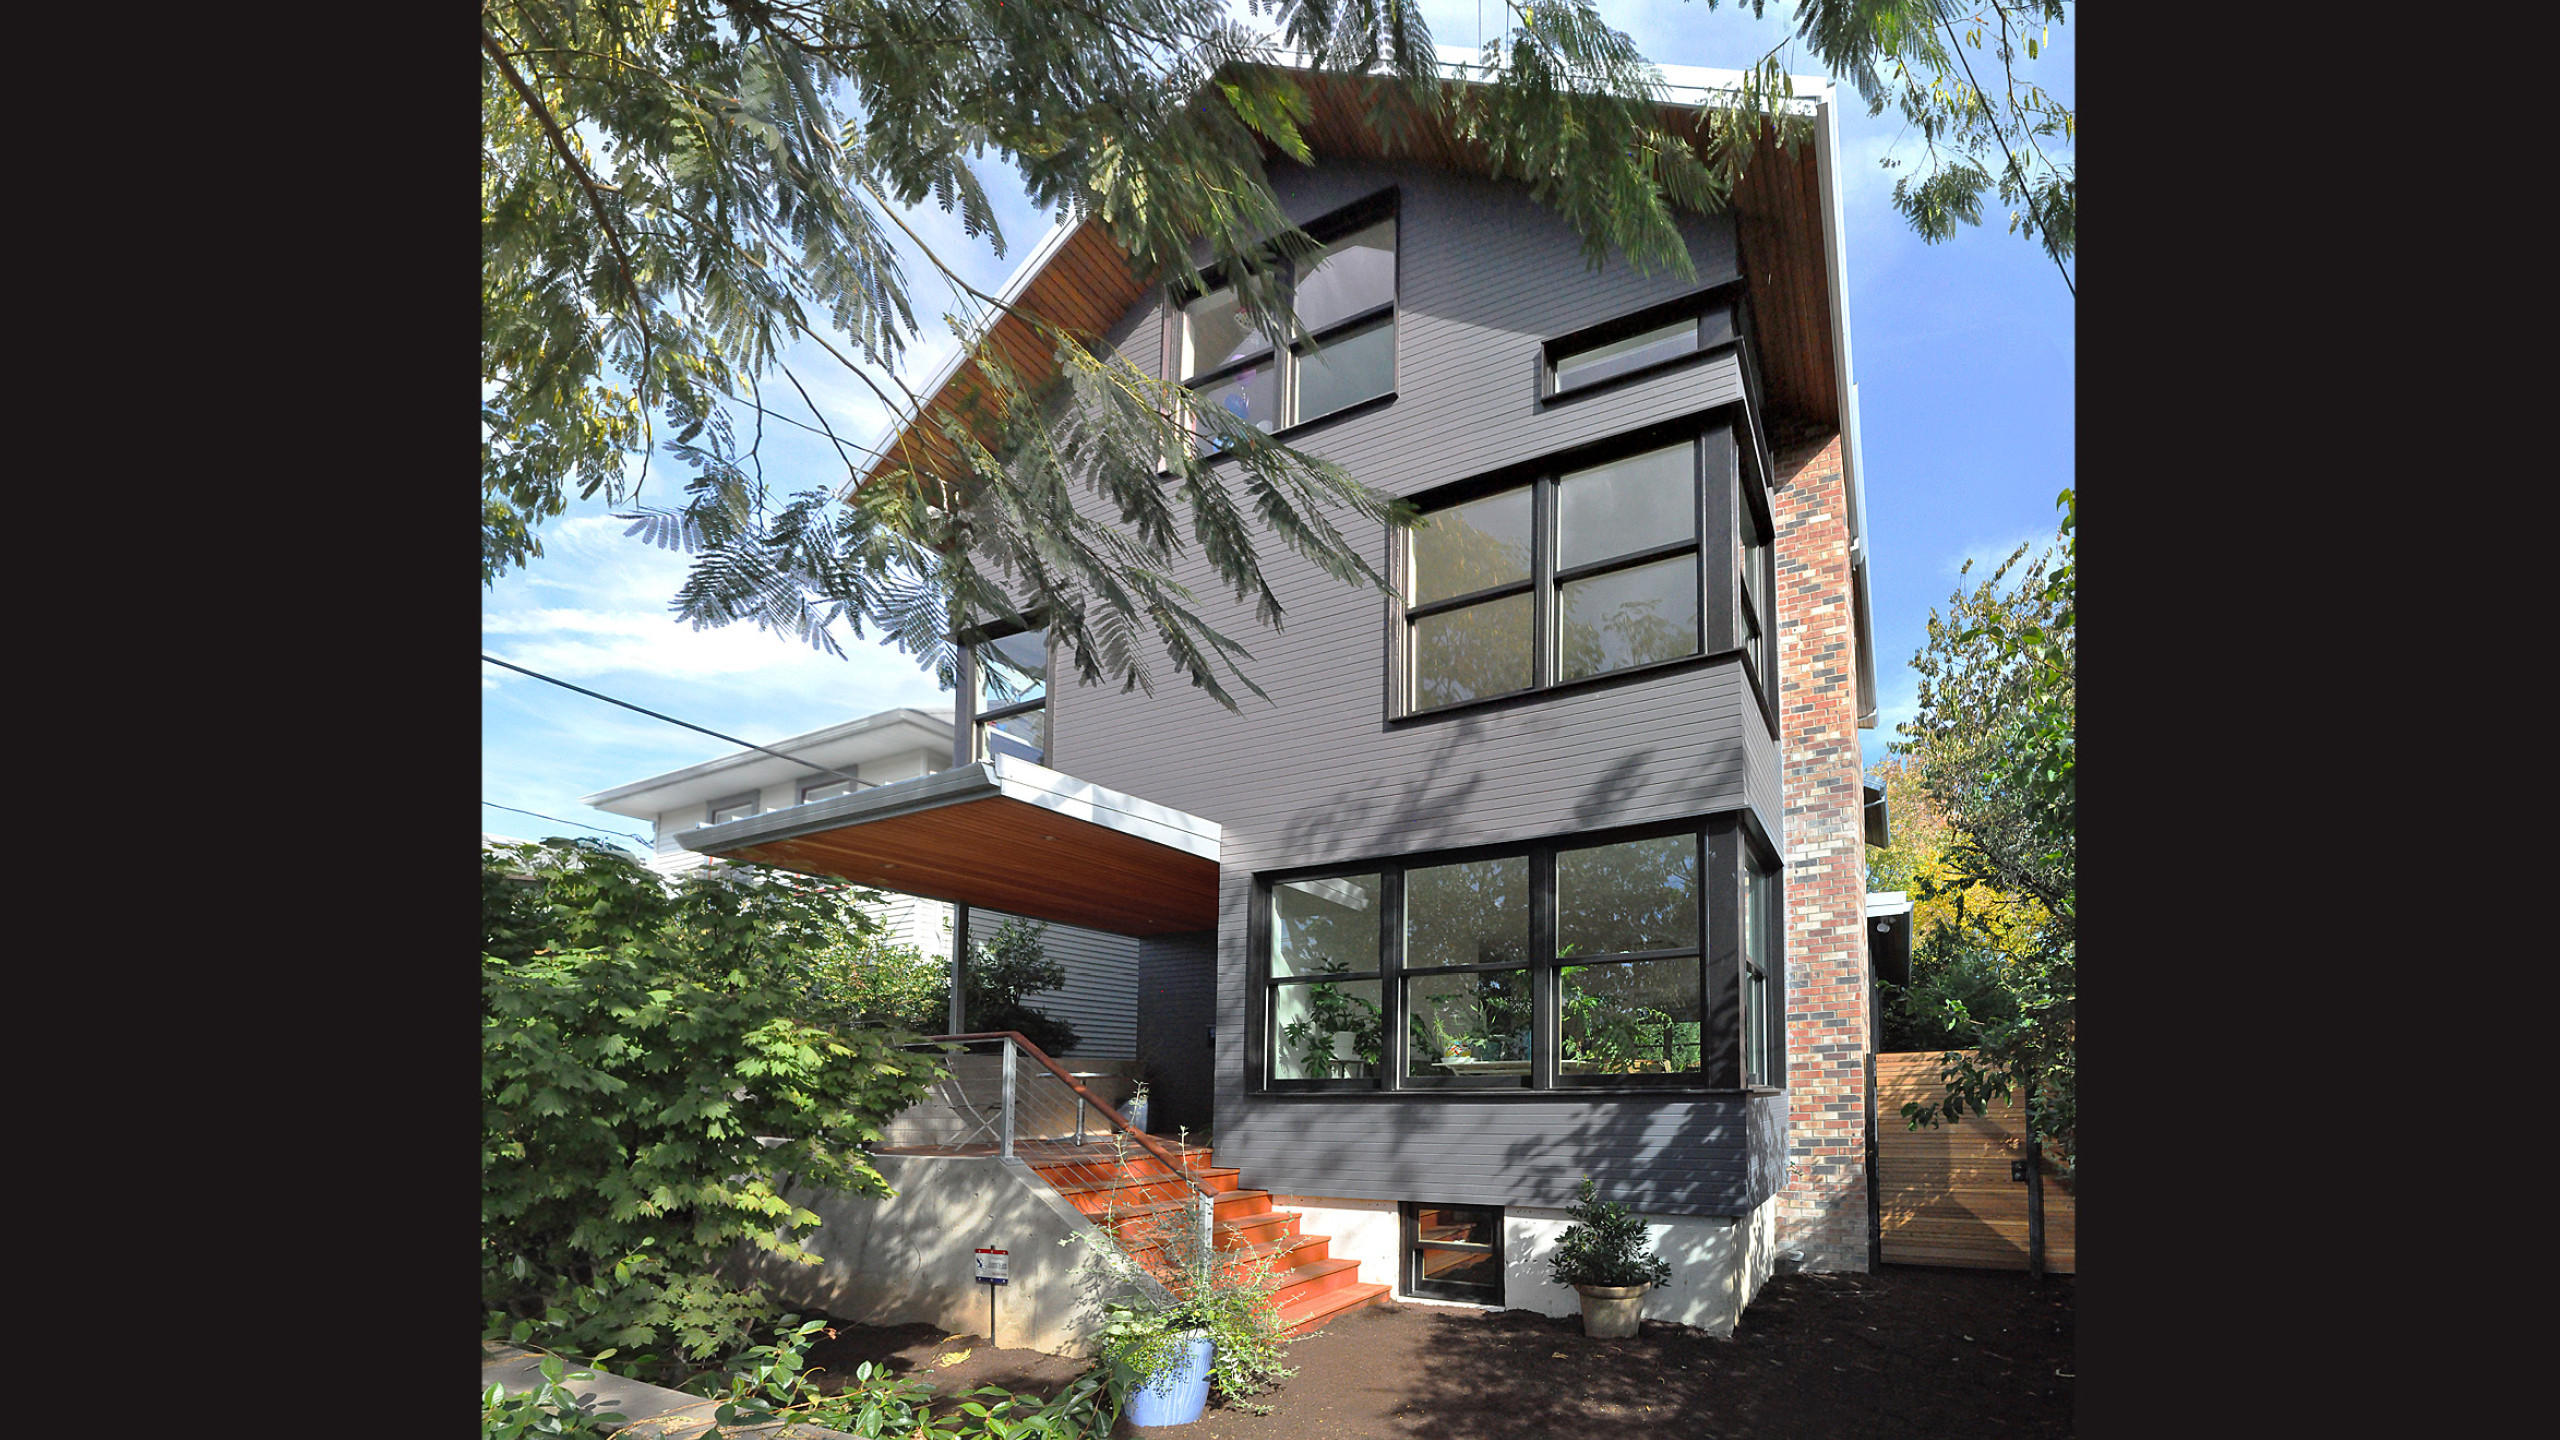 House C / image 7 / House C design by OFFICE 52 Architecture